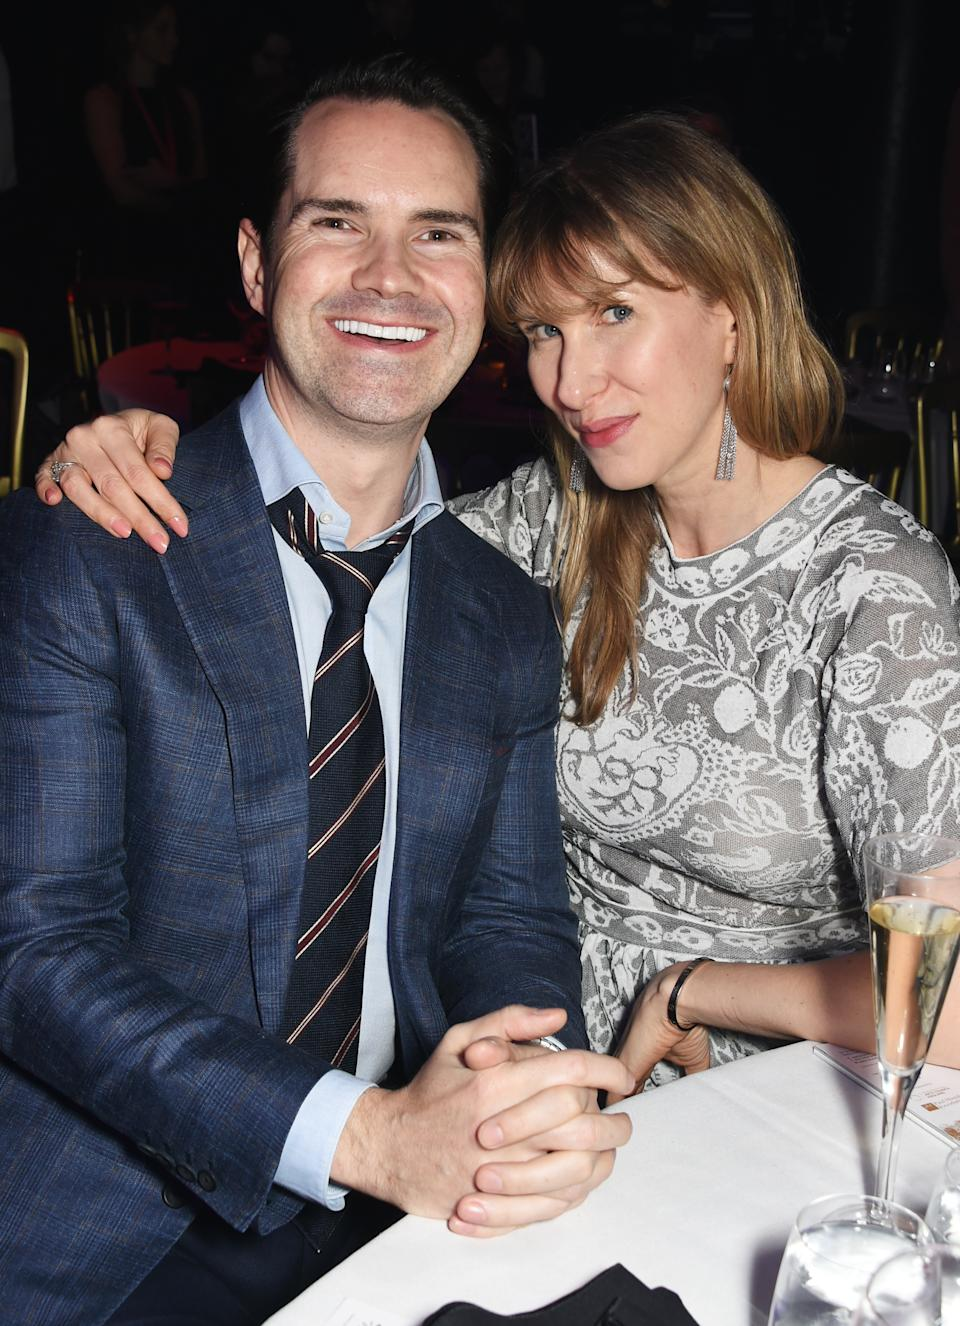 LONDON, ENGLAND - MARCH 16:  Jimmy Carr (L) and Karoline Copping attend the Roundhouse Gala at The Roundhouse on March 16, 2017 in London, England.  (Photo by David M. Benett/Dave Benett/Getty Images for Roundhouse)